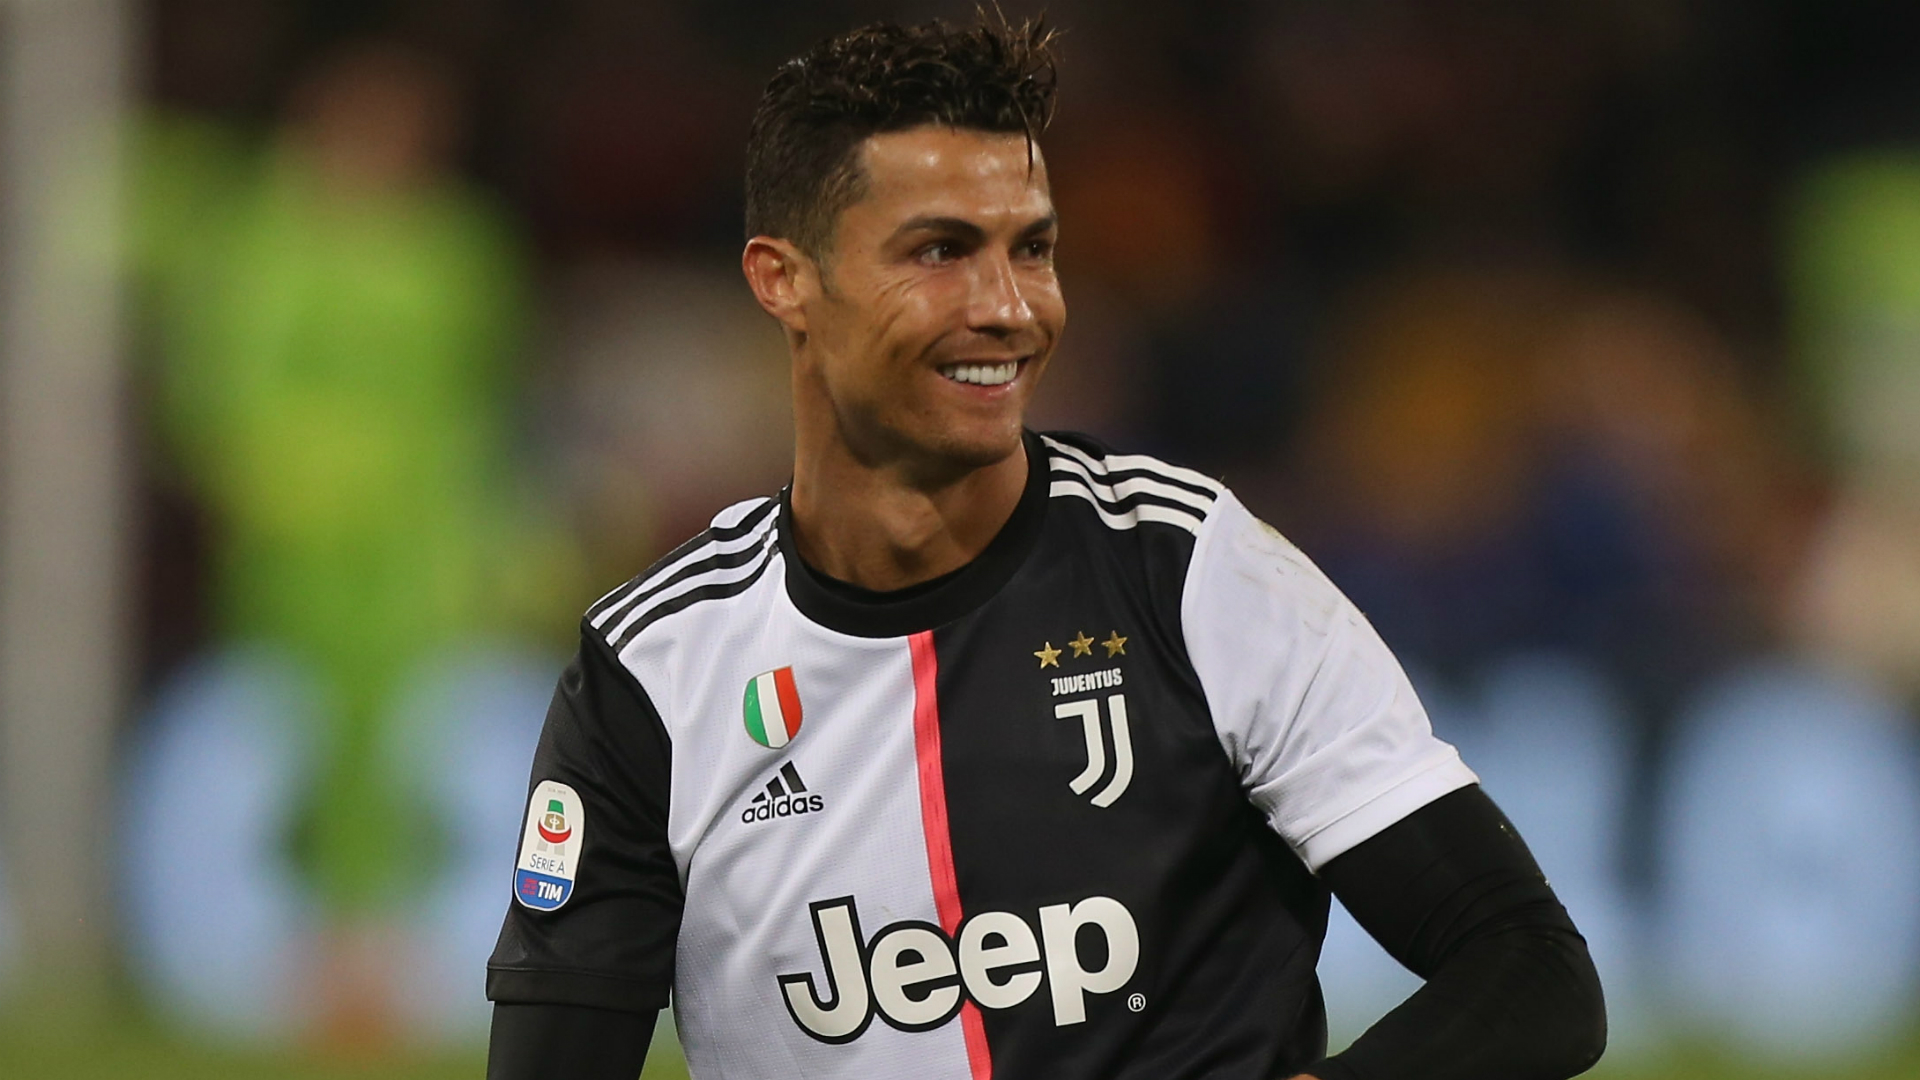 Ronaldo returns for testing ahead of second season at Juventus